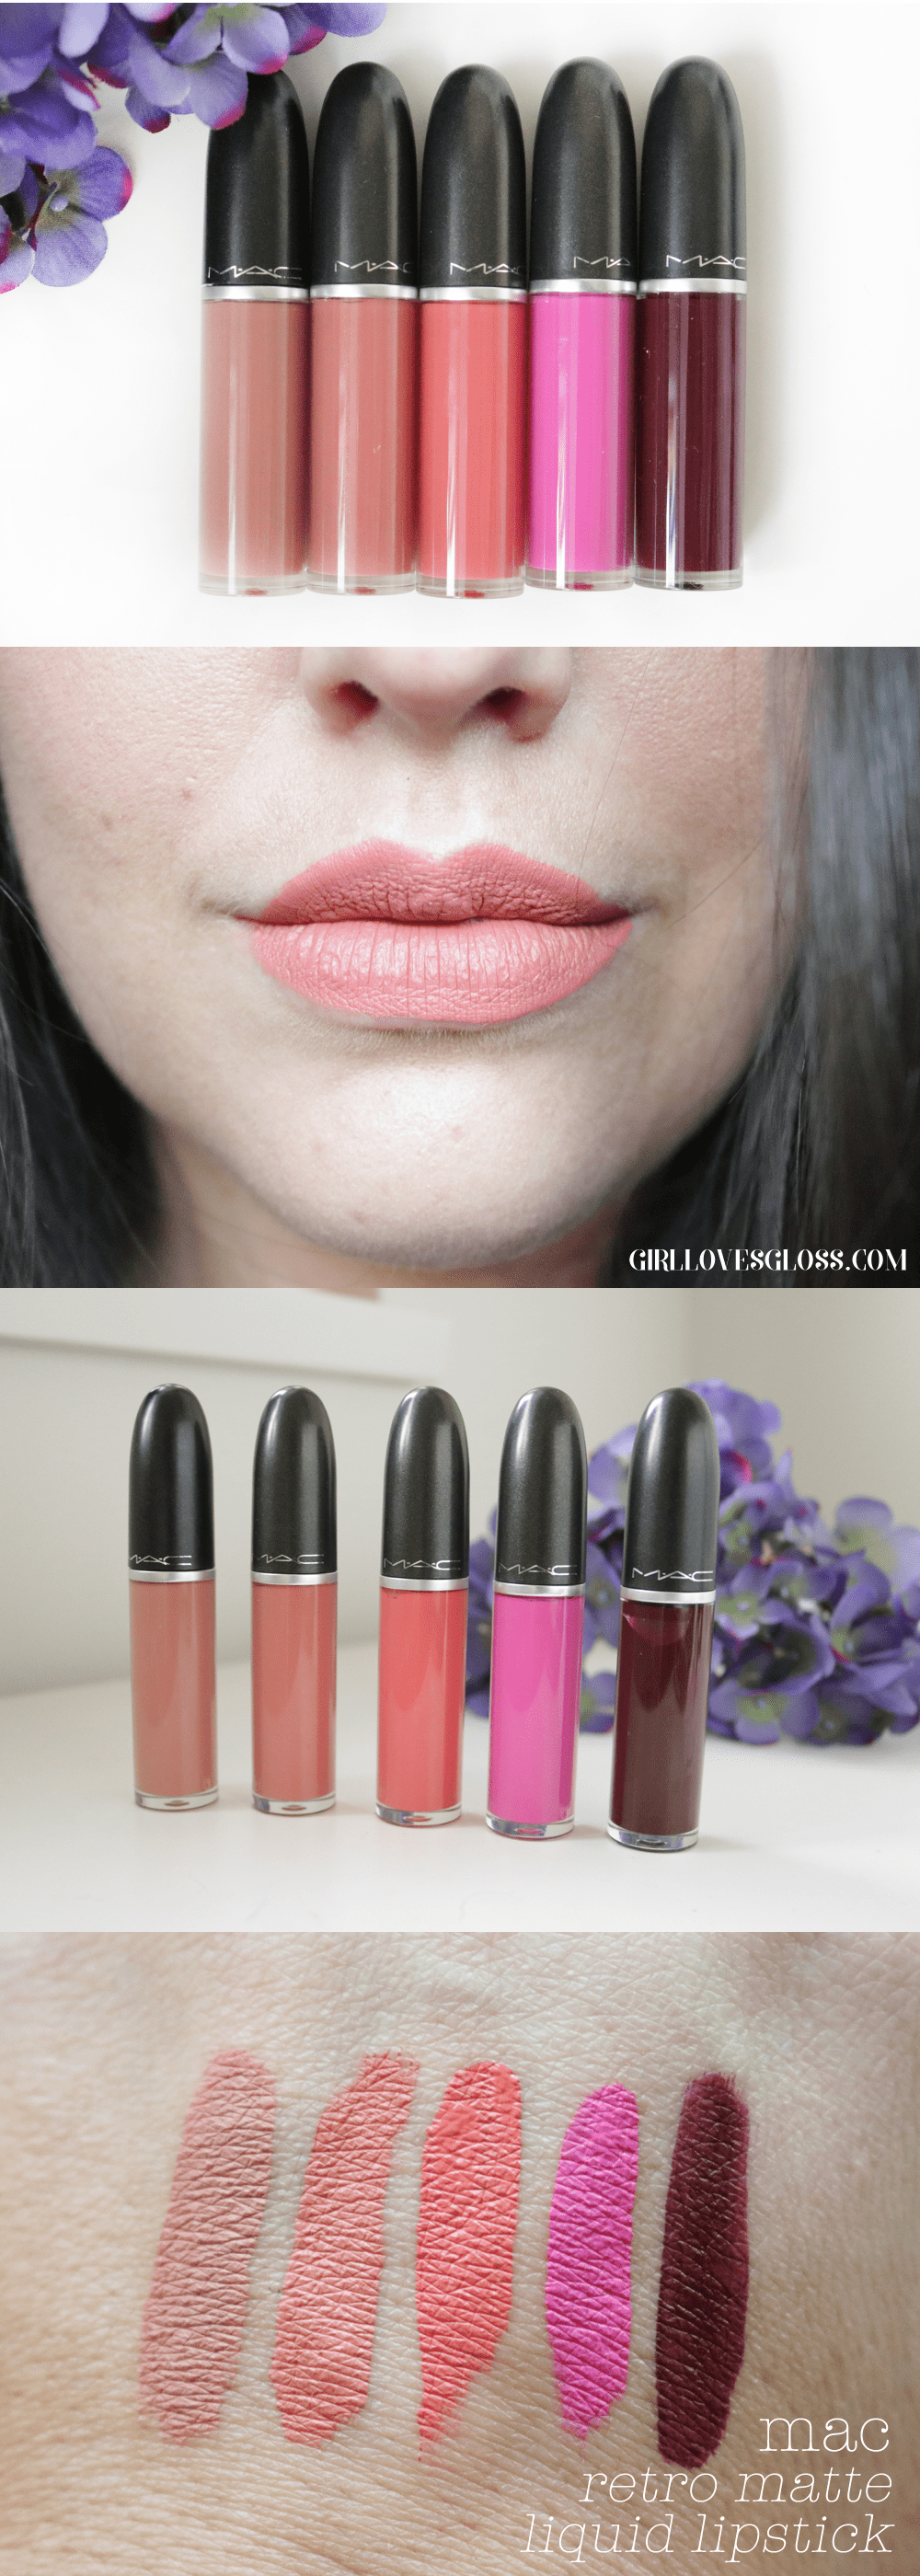 MAC Retro Matte Liquid Lipstick Review and Swatches